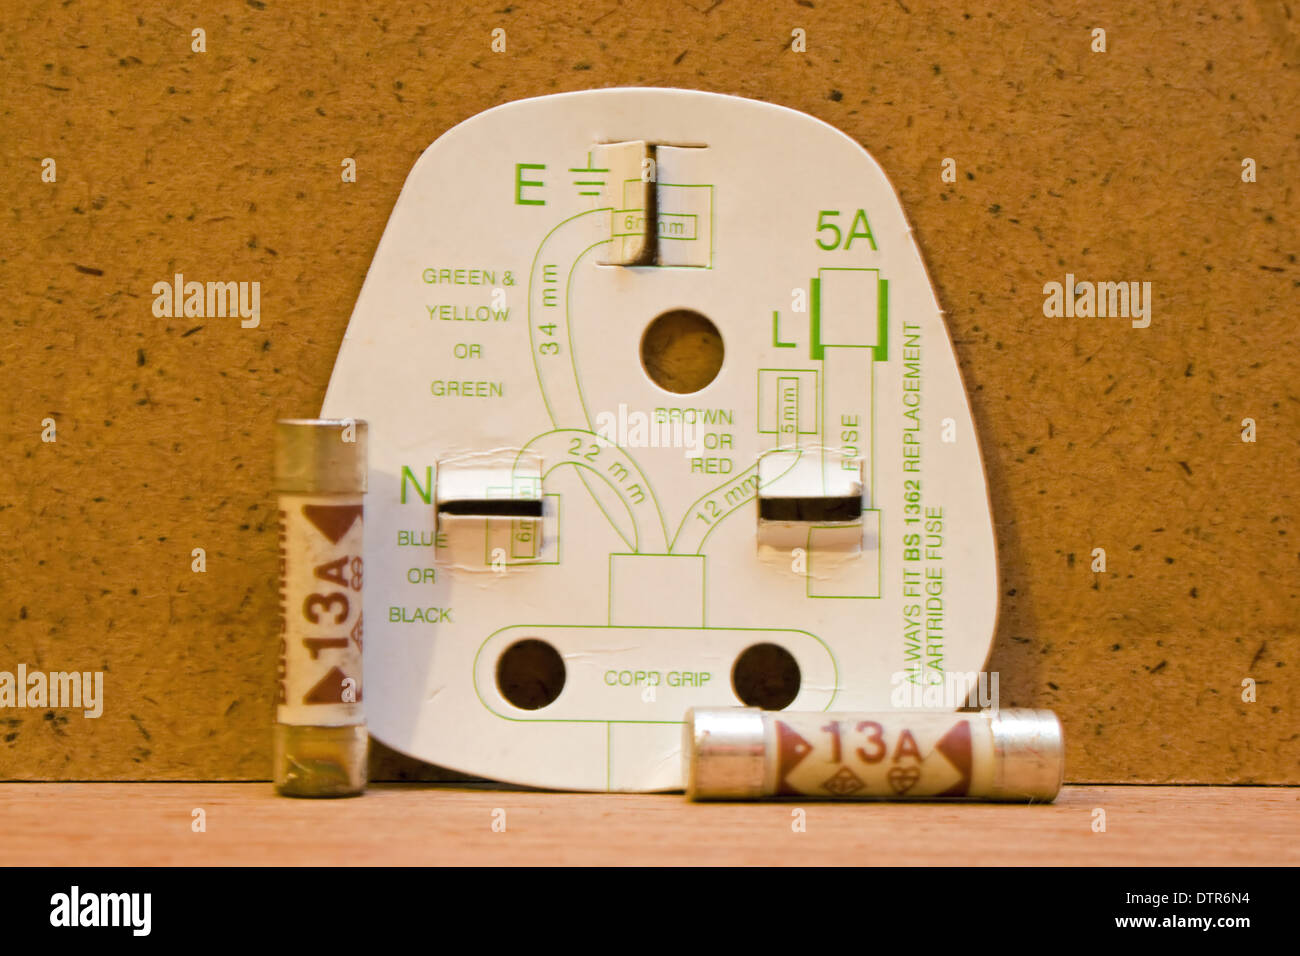 uk three pin plug wiring diagram with 13amp fuses DTR6N4 uk three pin plug wiring diagram with 13amp fuses stock photo plug wiring diagram at reclaimingppi.co